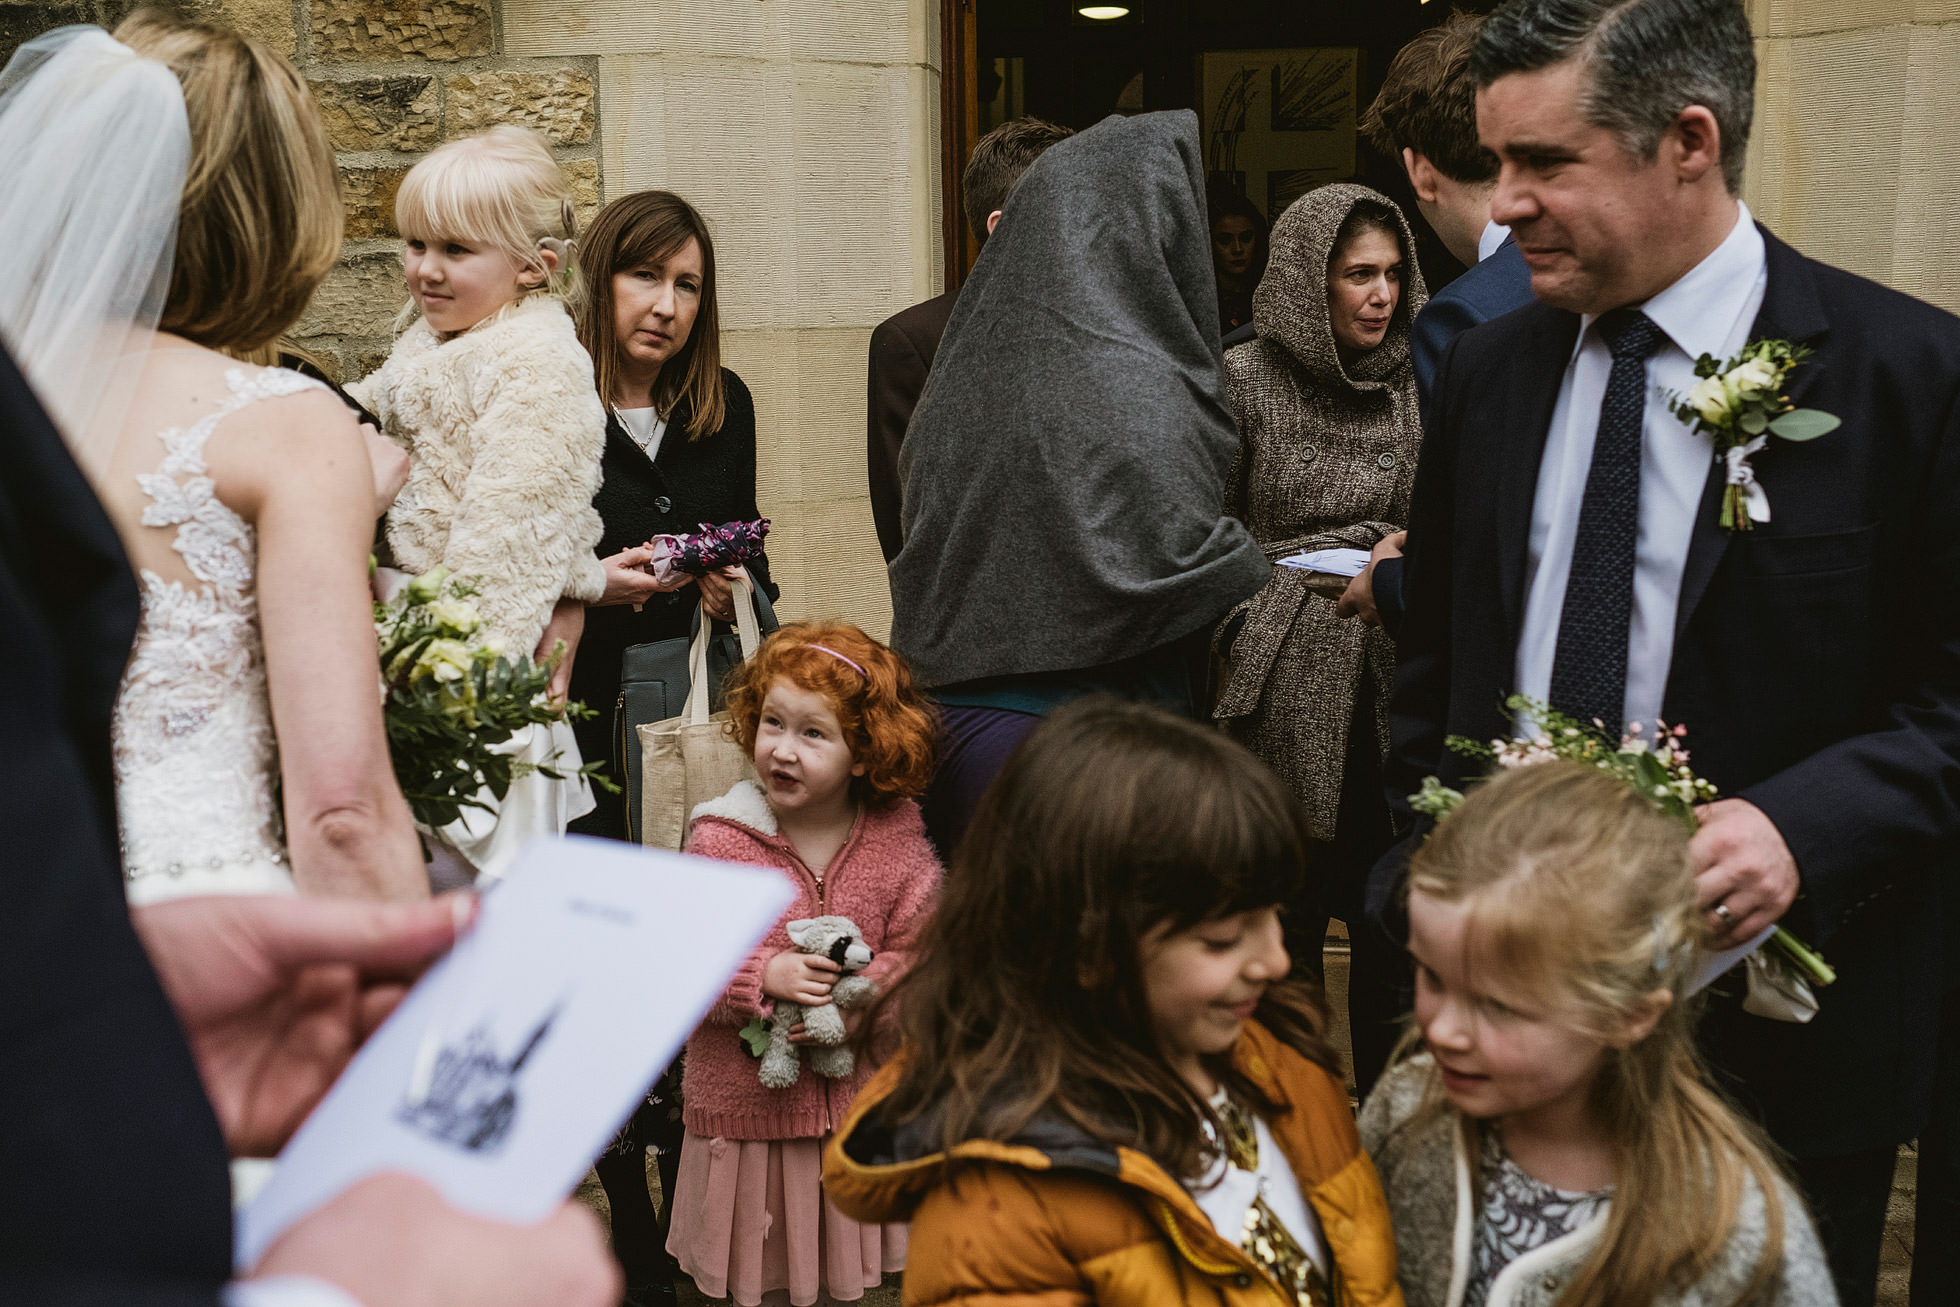 Group of wedding guests and children gather at Lartington Hall before wedding ceremony - layered documentary wedding photography